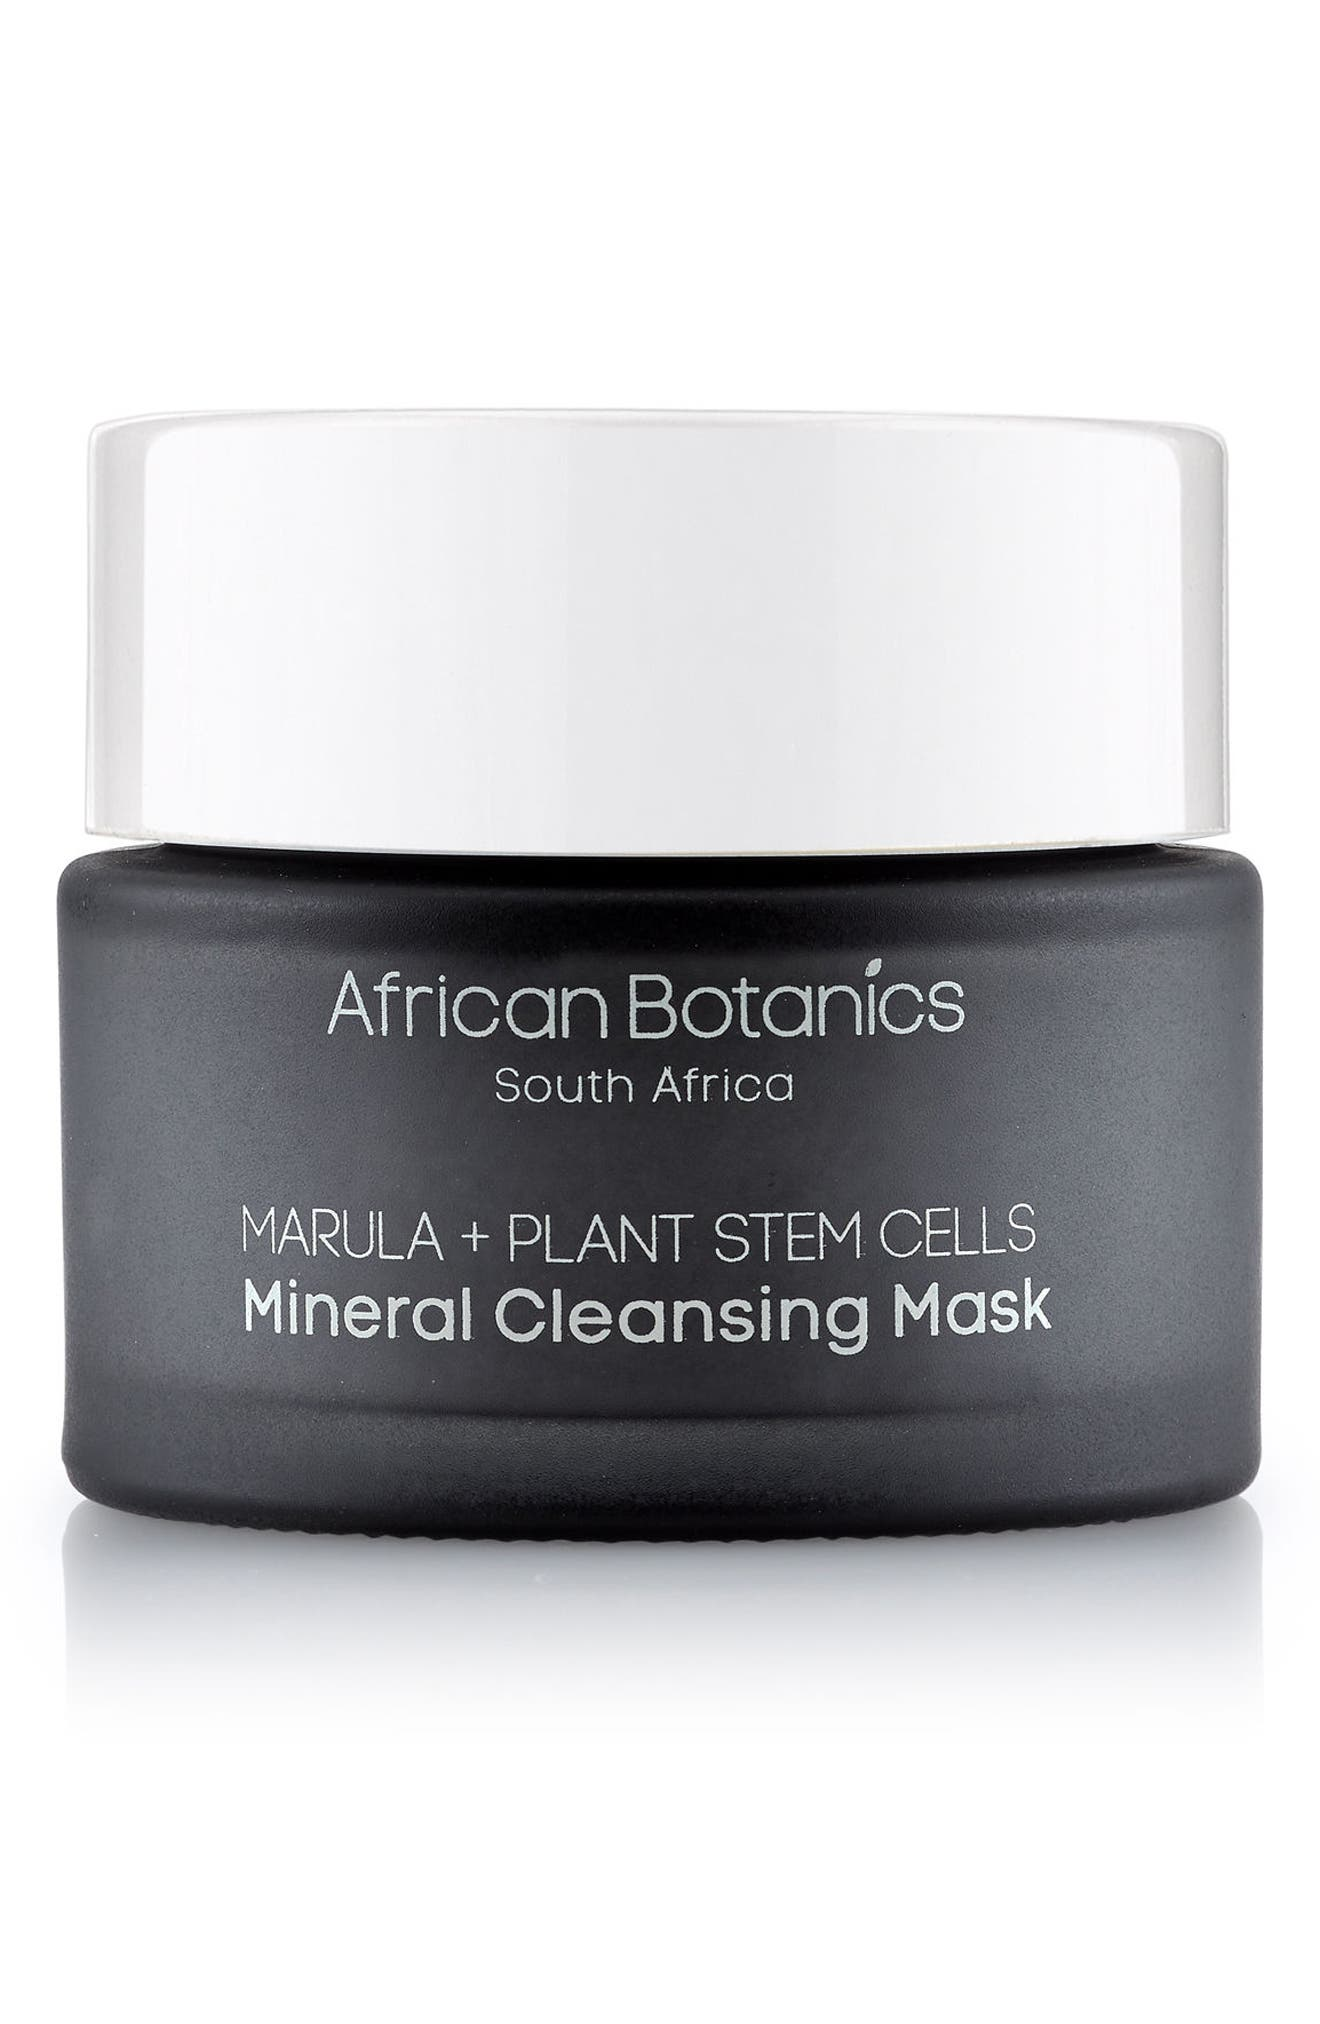 Marula Mineral Cleansing Mask,                             Main thumbnail 1, color,                             000